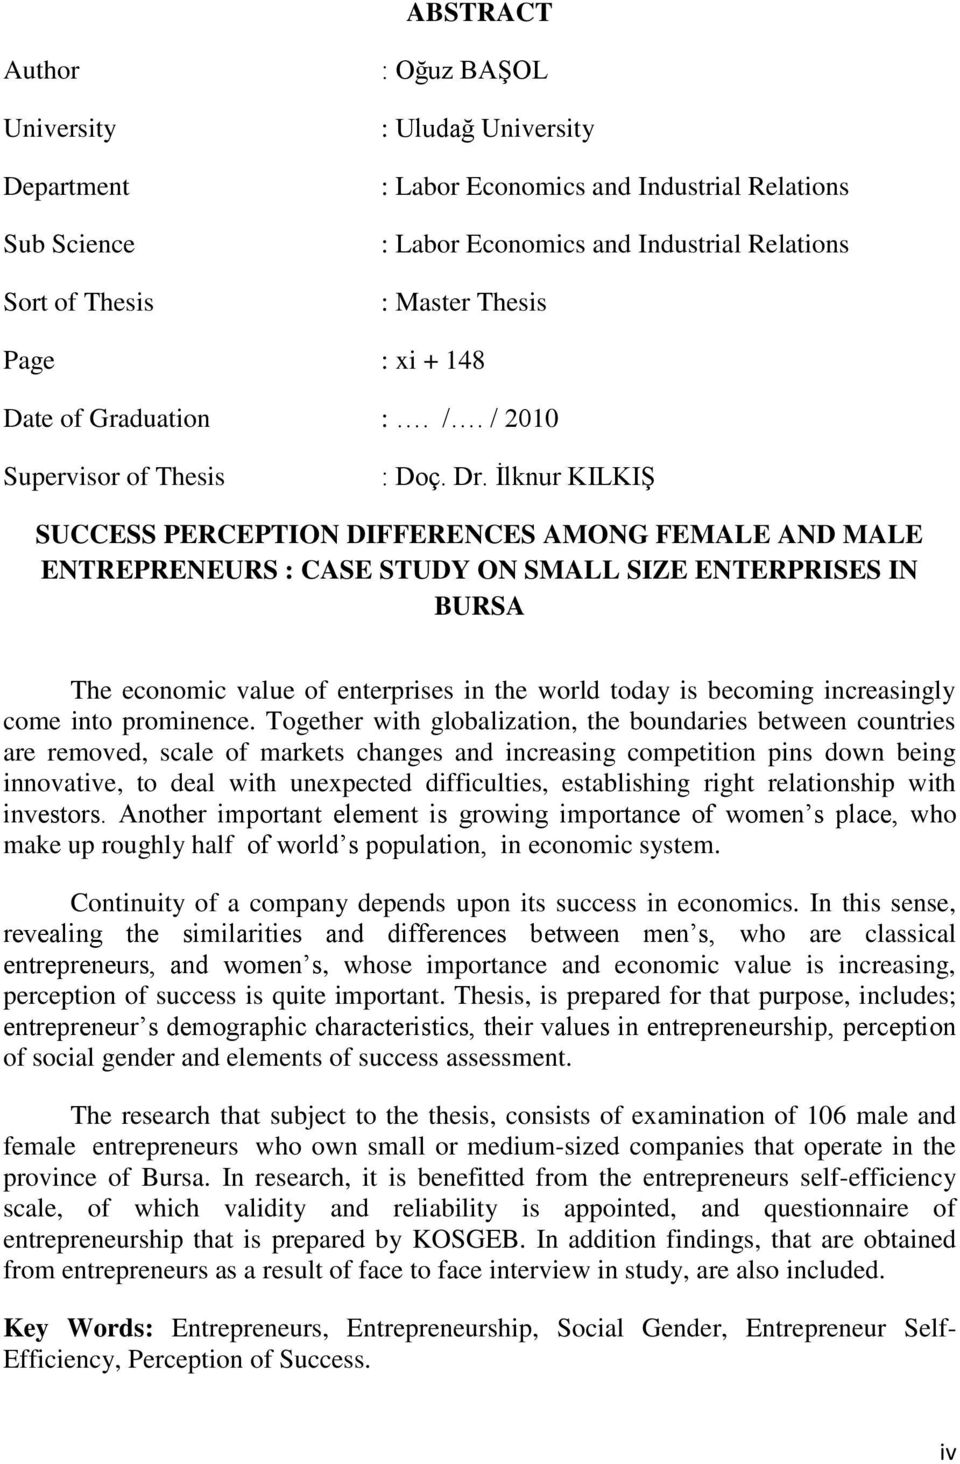 İlknur KILKIŞ SUCCESS PERCEPTION DIFFERENCES AMONG FEMALE AND MALE ENTREPRENEURS : CASE STUDY ON SMALL SIZE ENTERPRISES IN BURSA The economic value of enterprises in the world today is becoming